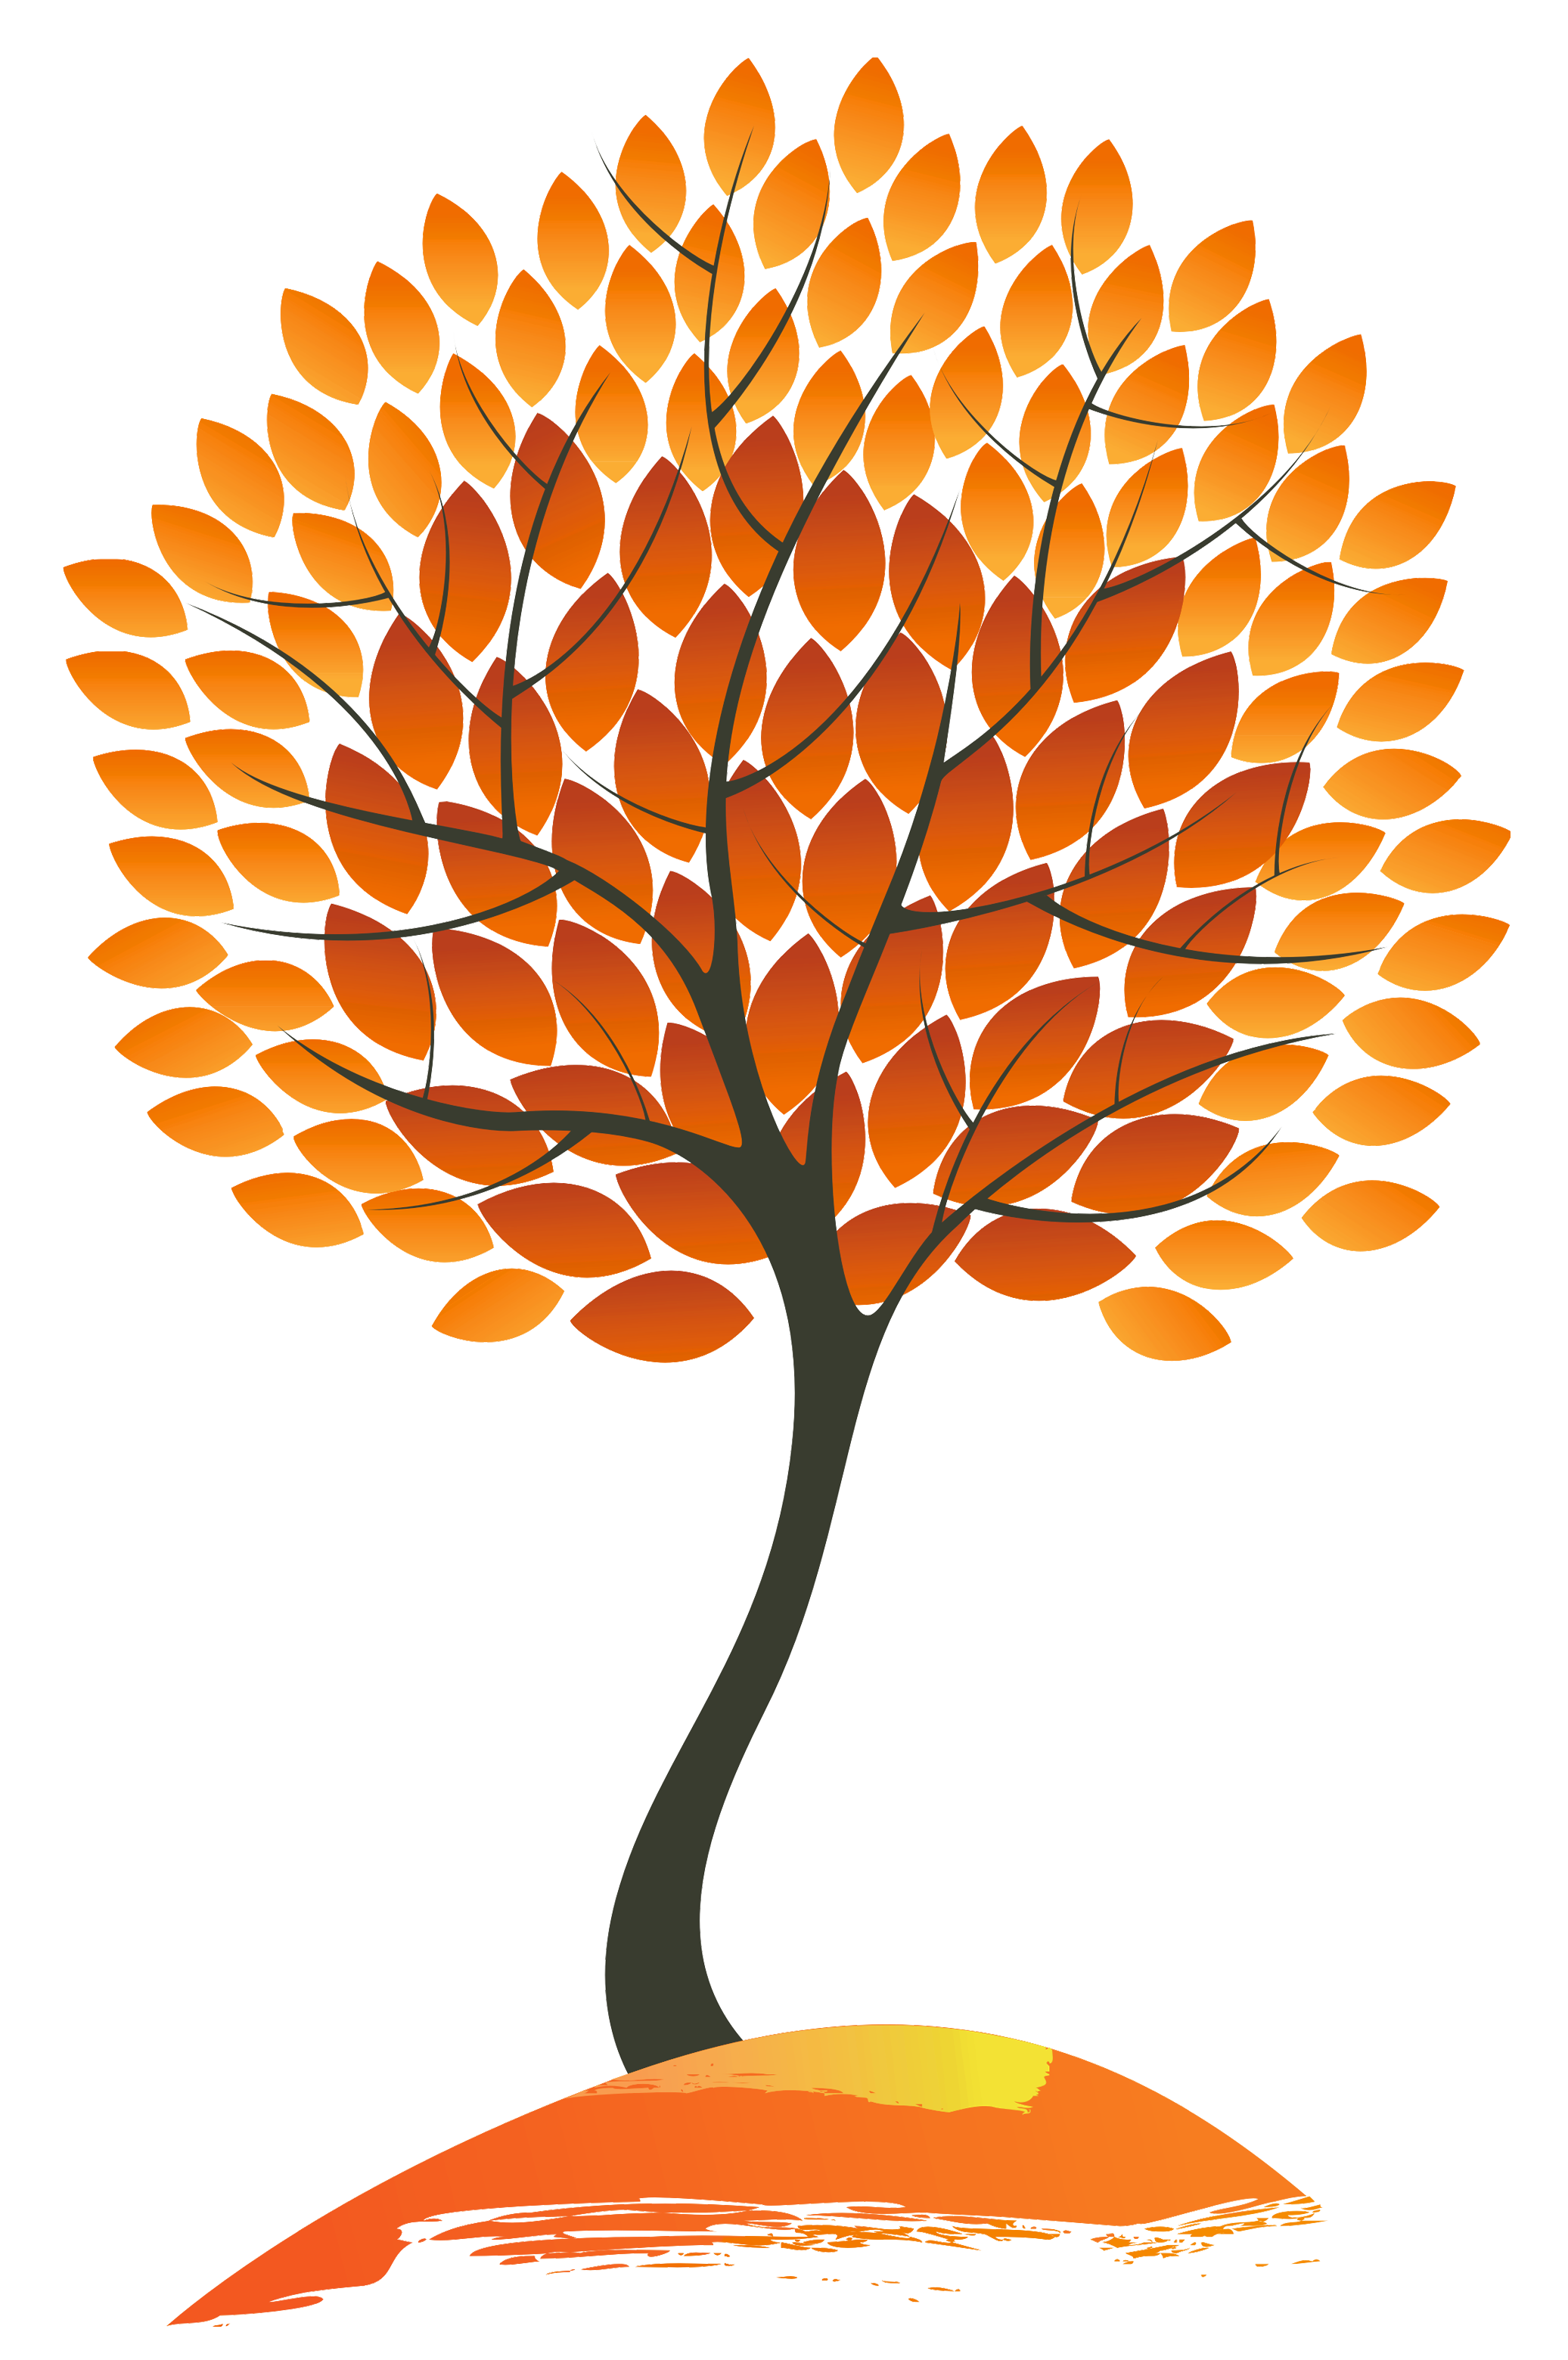 Orange tree clipart png royalty free library Autumn Tree PNG Clipart Image | Gallery Yopriceville - High-Quality ... png royalty free library